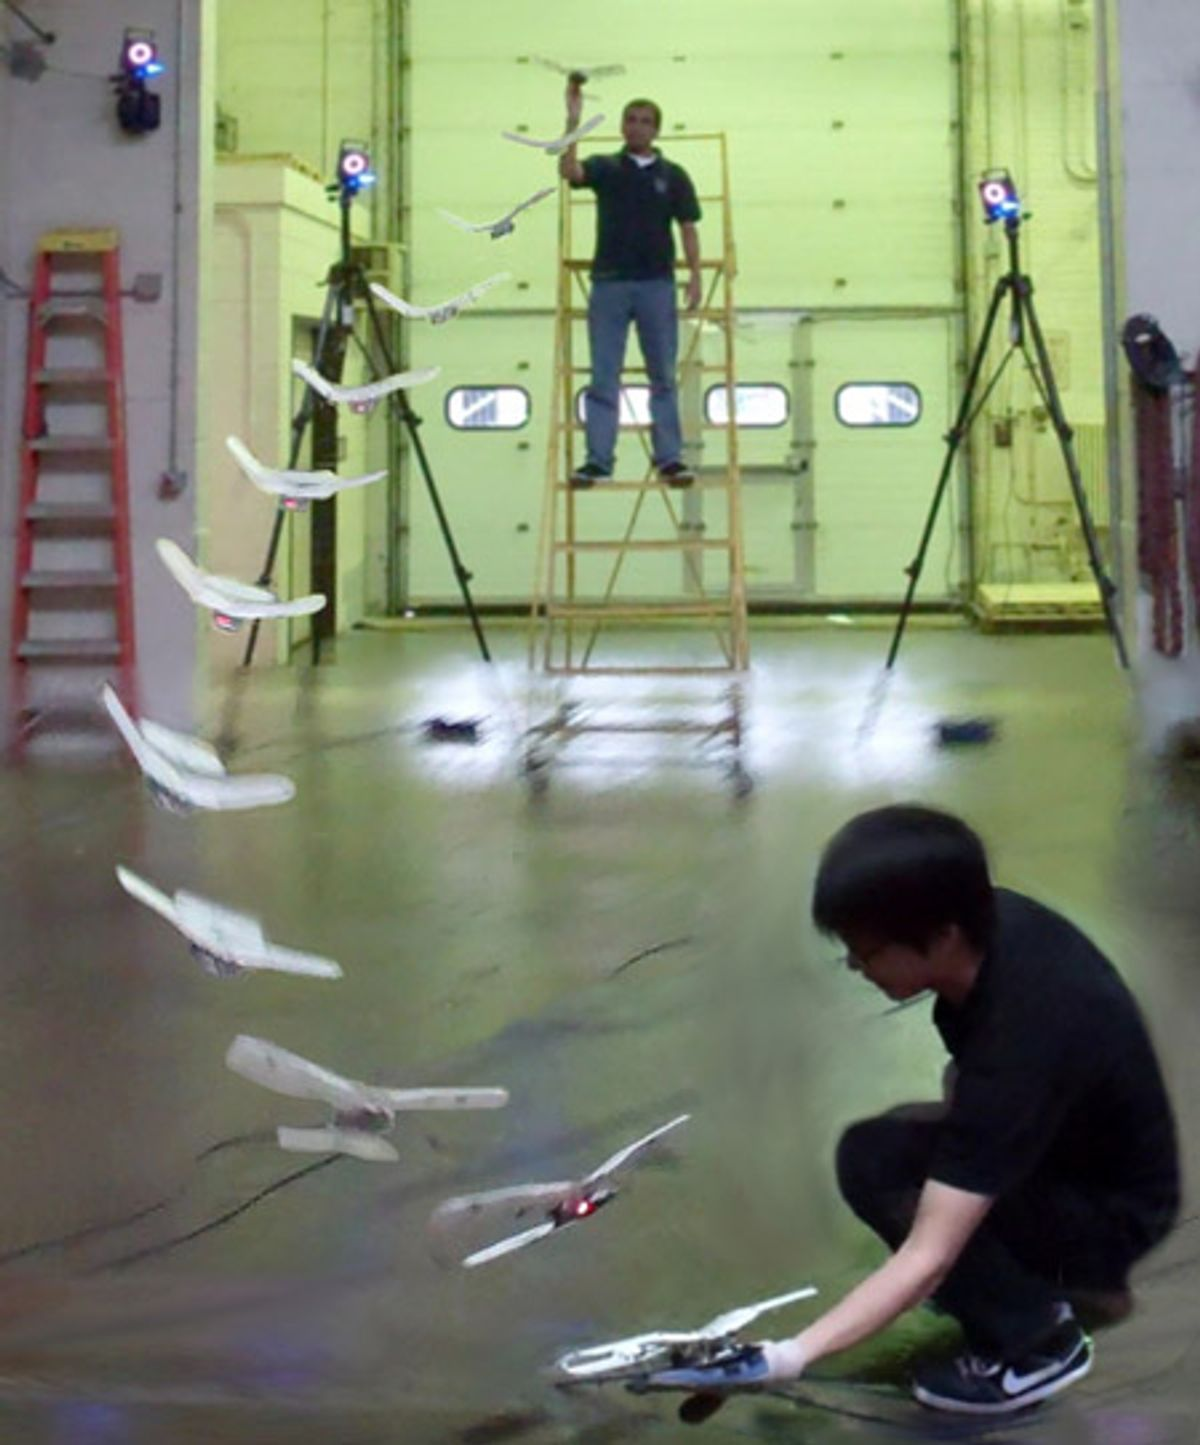 Flapping Robotic Birdplane Lands Right on Your Hand